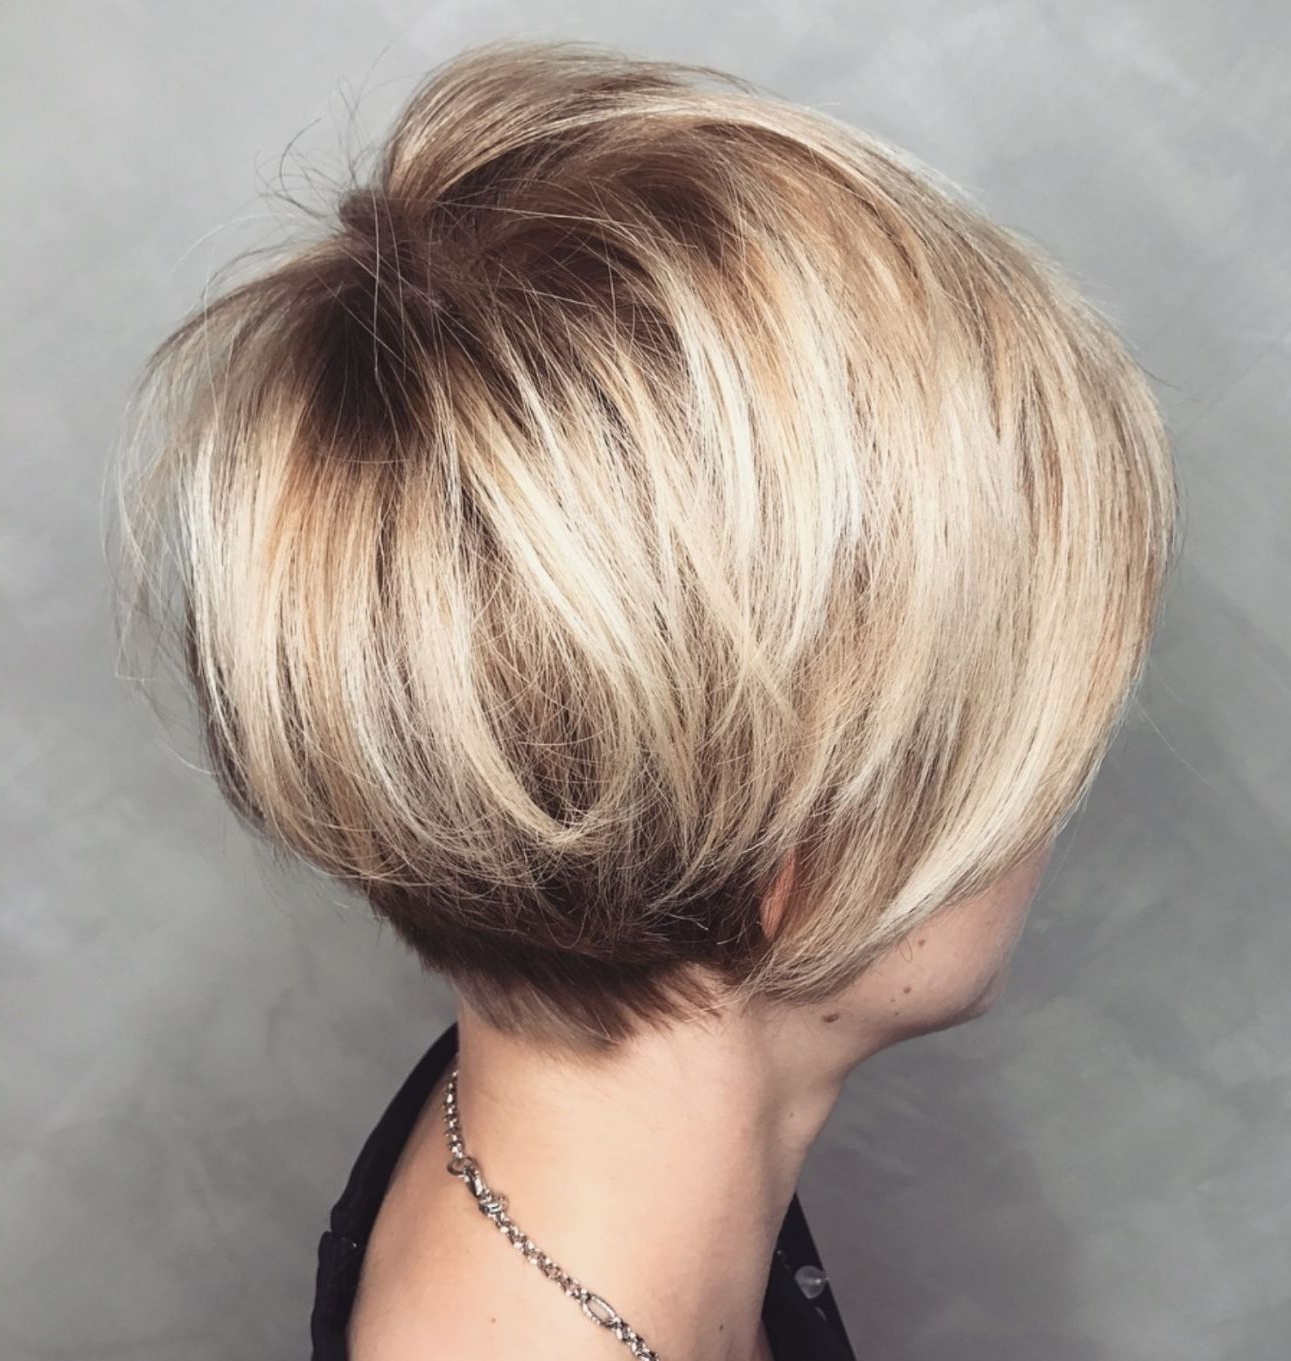 100 Mind Blowing Short Hairstyles For Fine Hair In 2019 With Regard To Long Pixie Haircuts With Sharp Layers And Highlights (View 4 of 20)